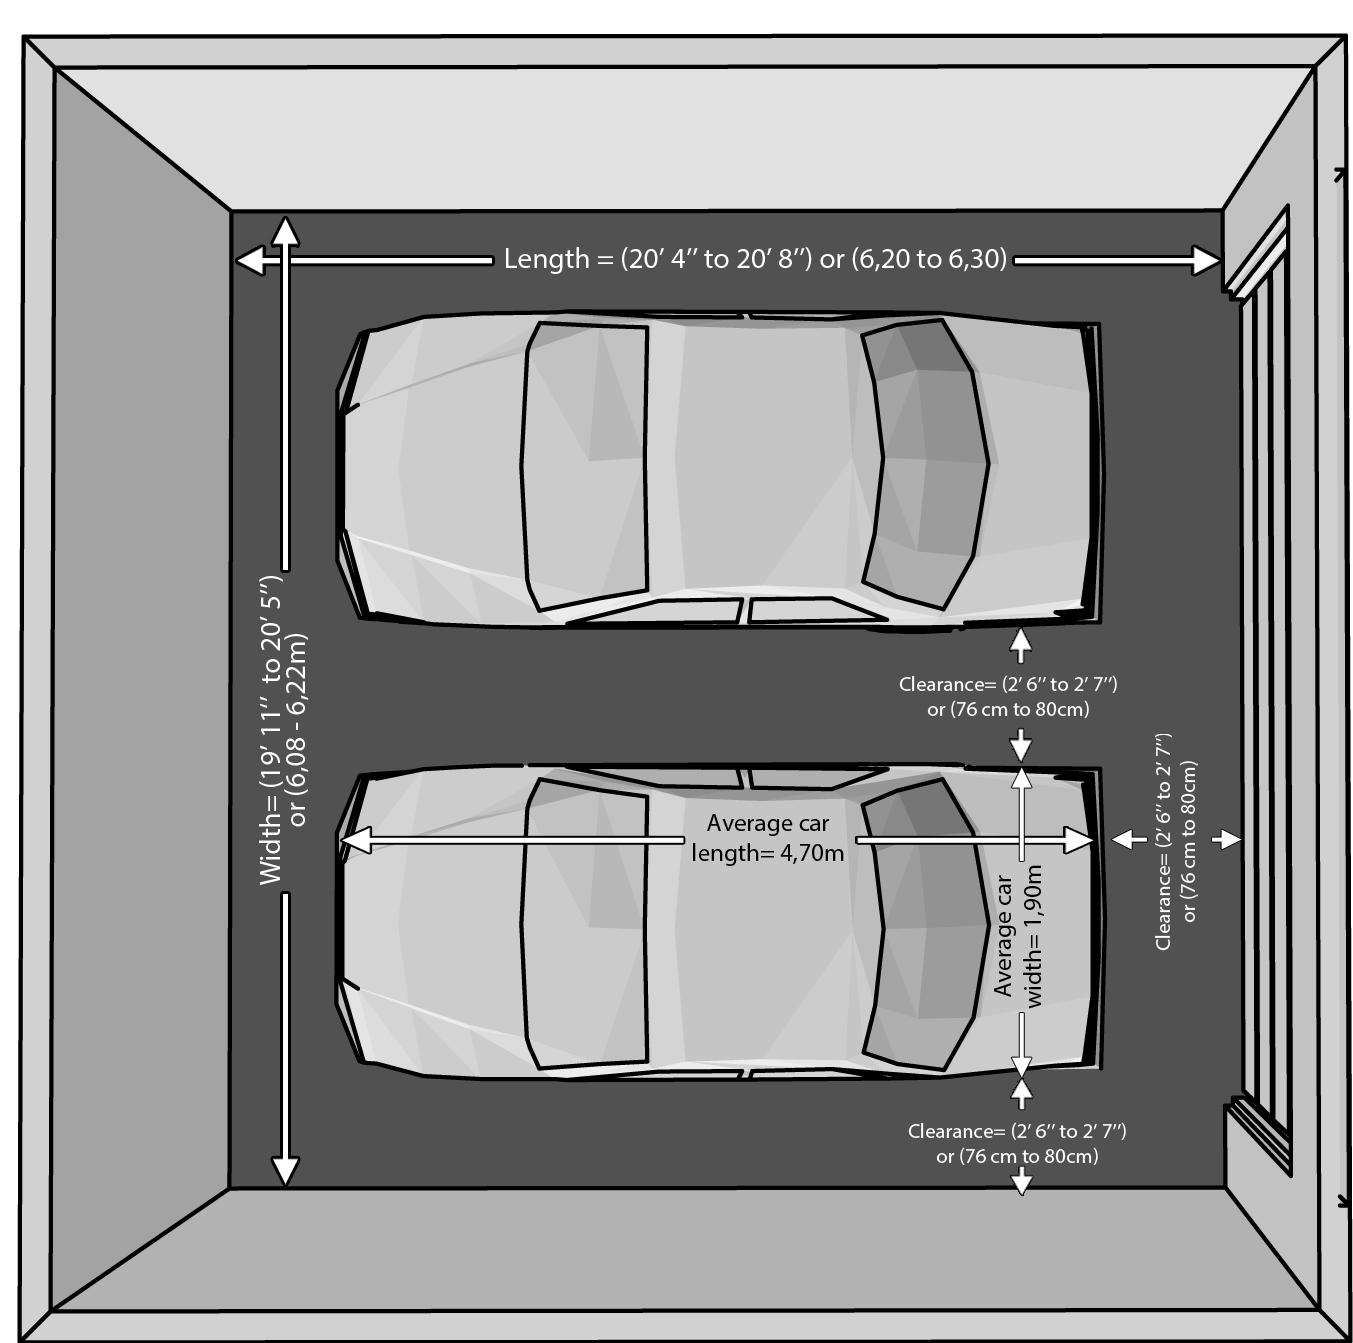 Size Of Car Garage Of The Dimensions Of An One Car And A Two Car Garage